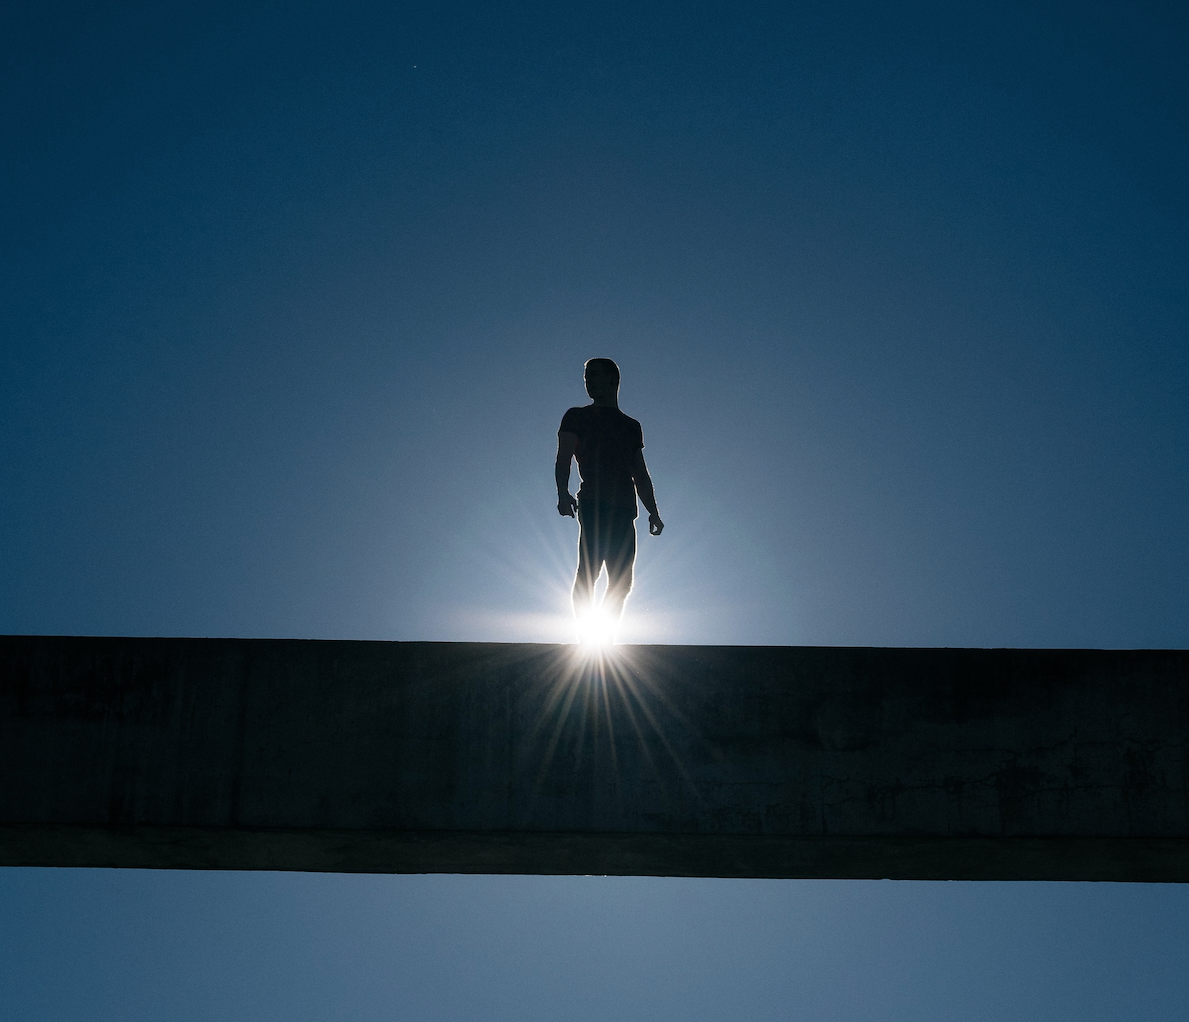 man standing on beam